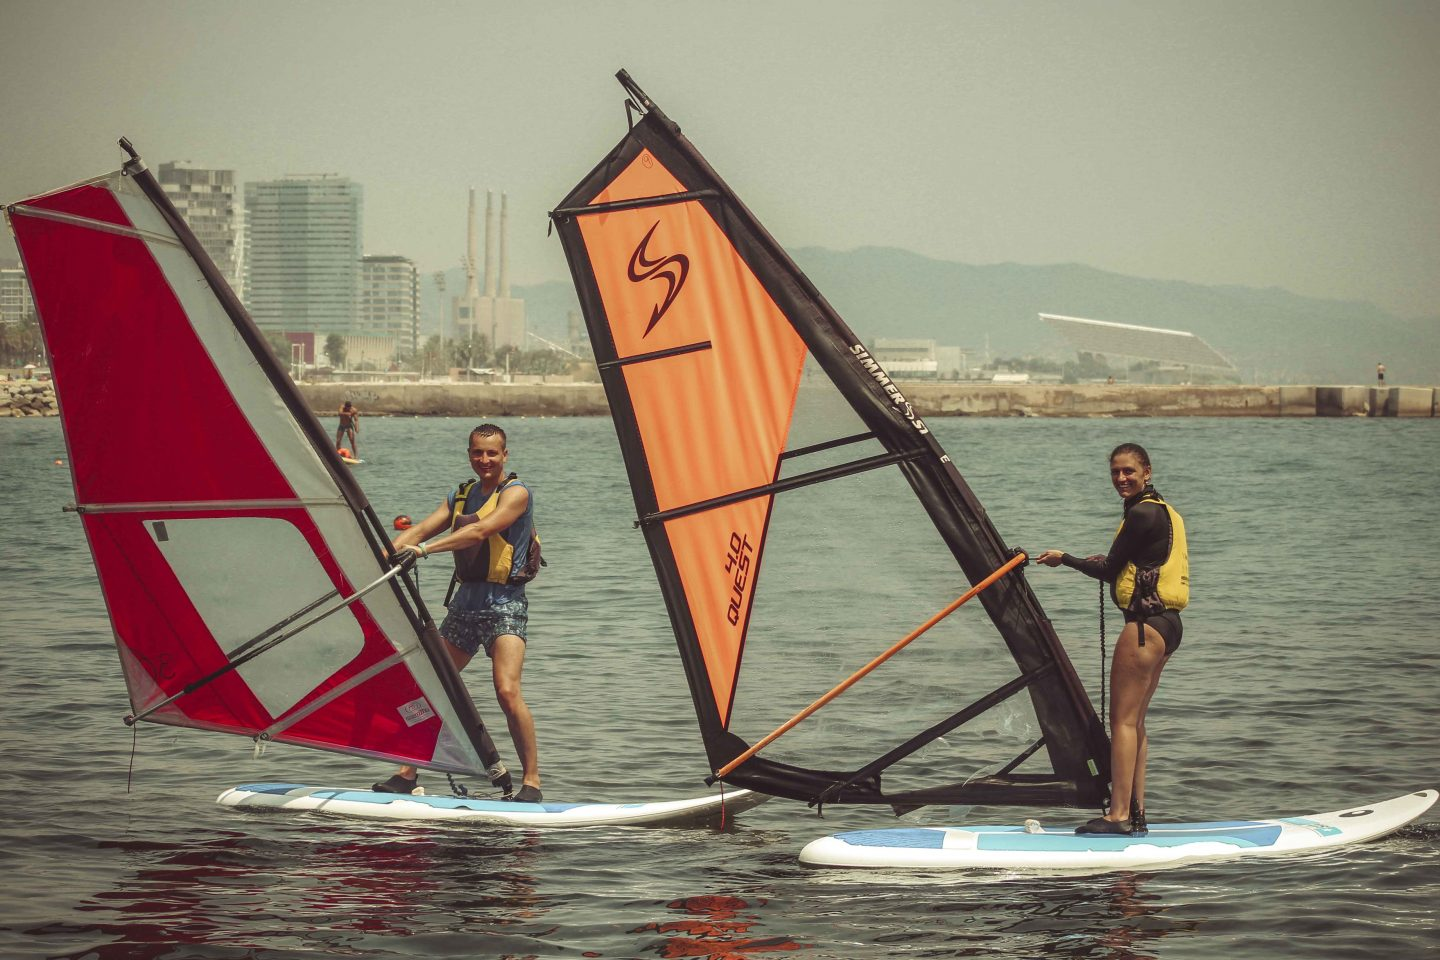 Our windsurf experience in Barcelona  How we enjoyed our